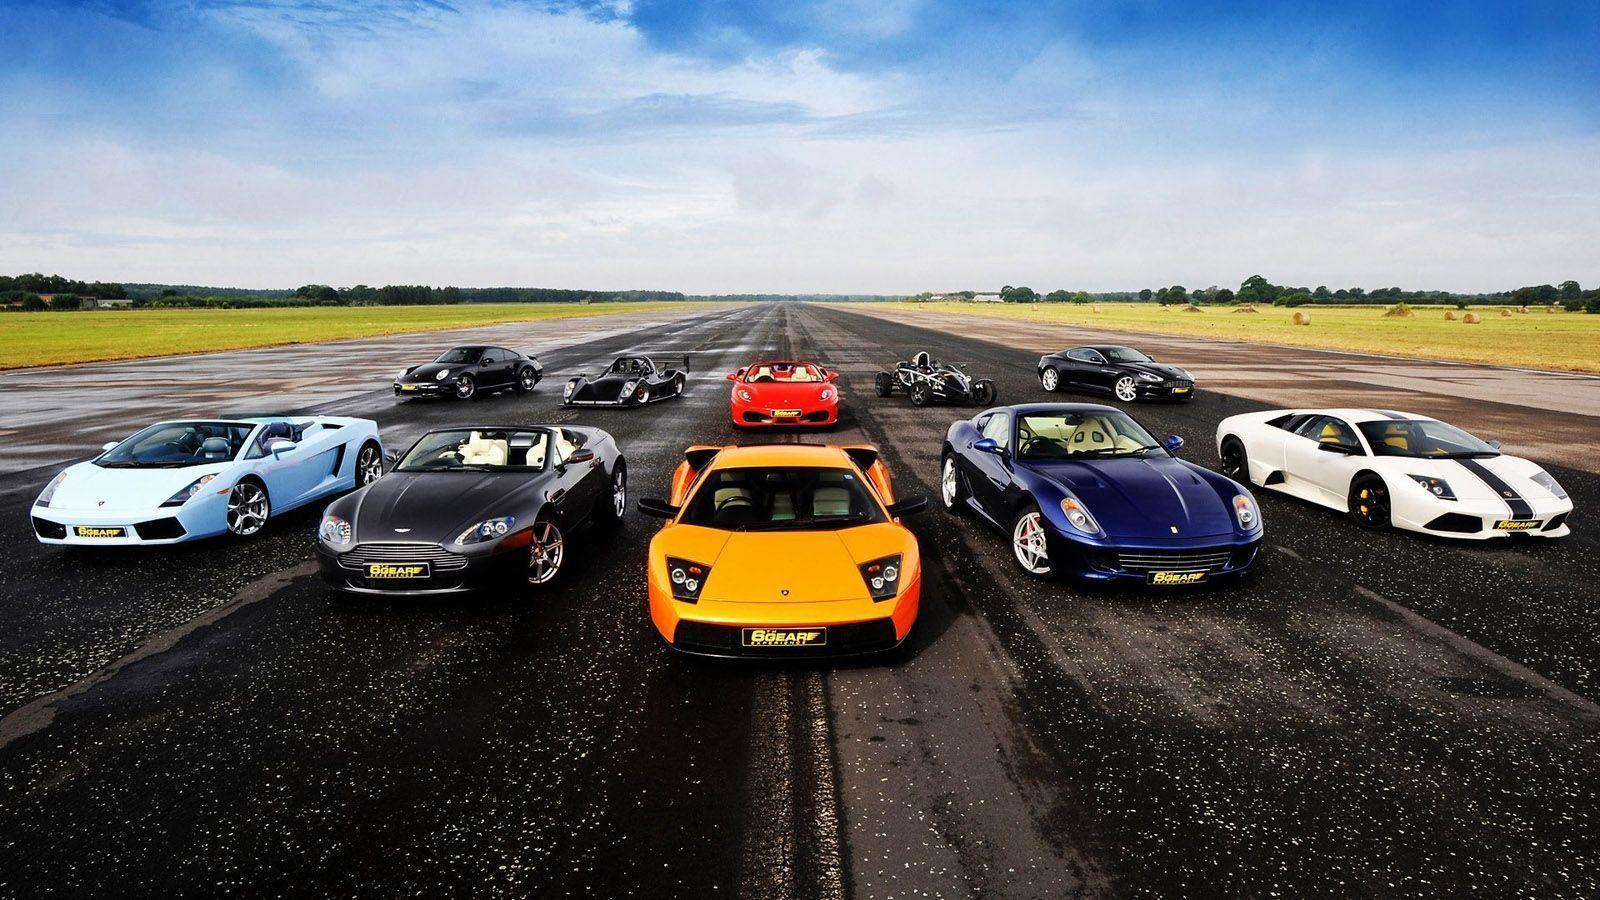 Cool Cars Wallpaper 2013 Hq Pictures 13 HD Wallpapers | lzamgs.